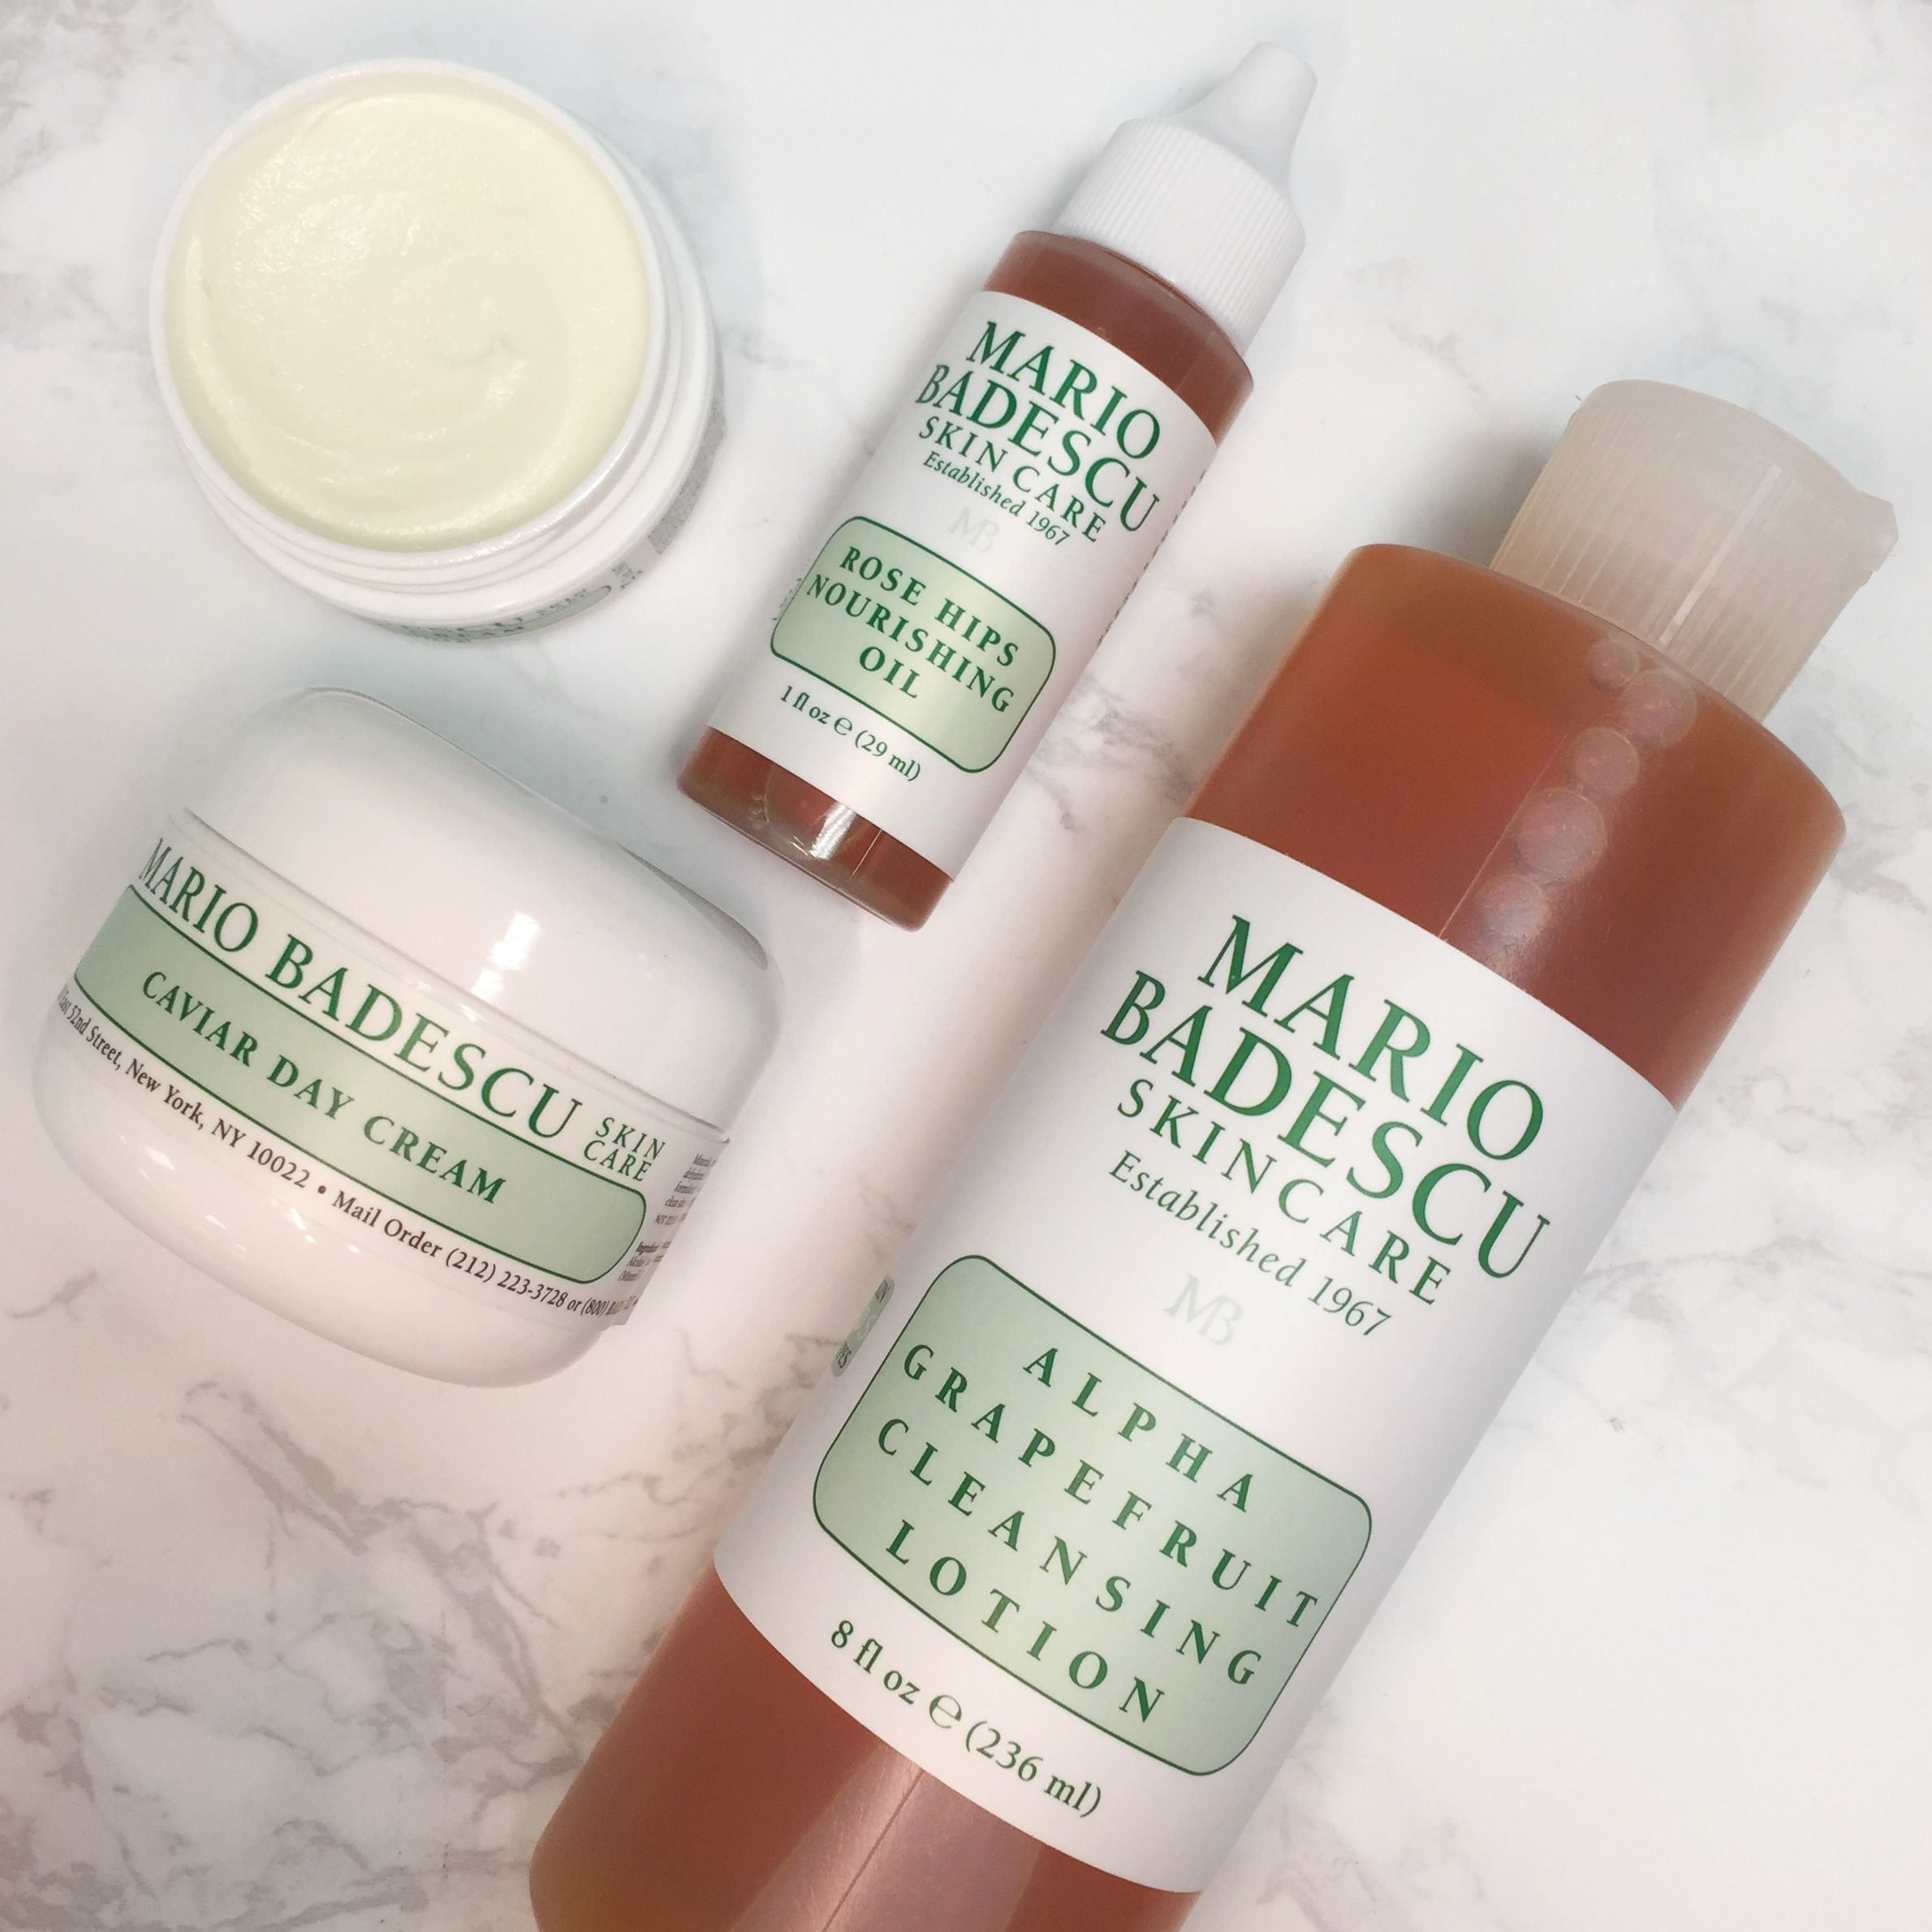 The Order In Which You Apply Your Skin Care Matters Learn How To Layer The Right Way So You Get The Most Out Mario Badescu Skin Care Skin Care Order Skin